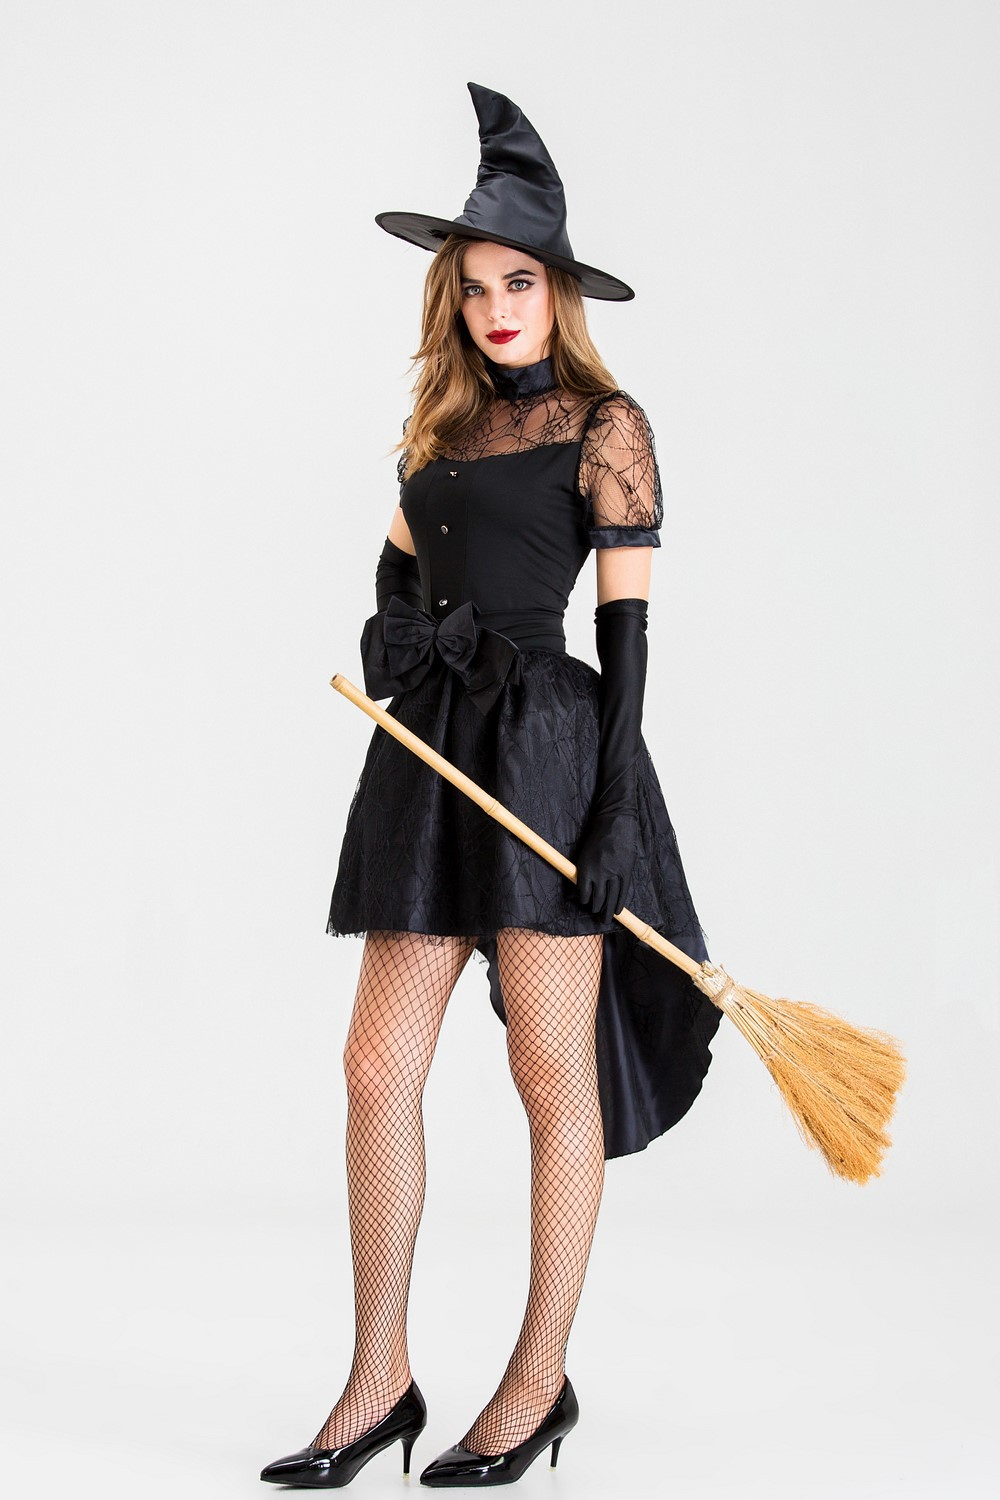 Witch stage costume swallow tail skirt sexy witch game costume women Halloween Costume Adult Black